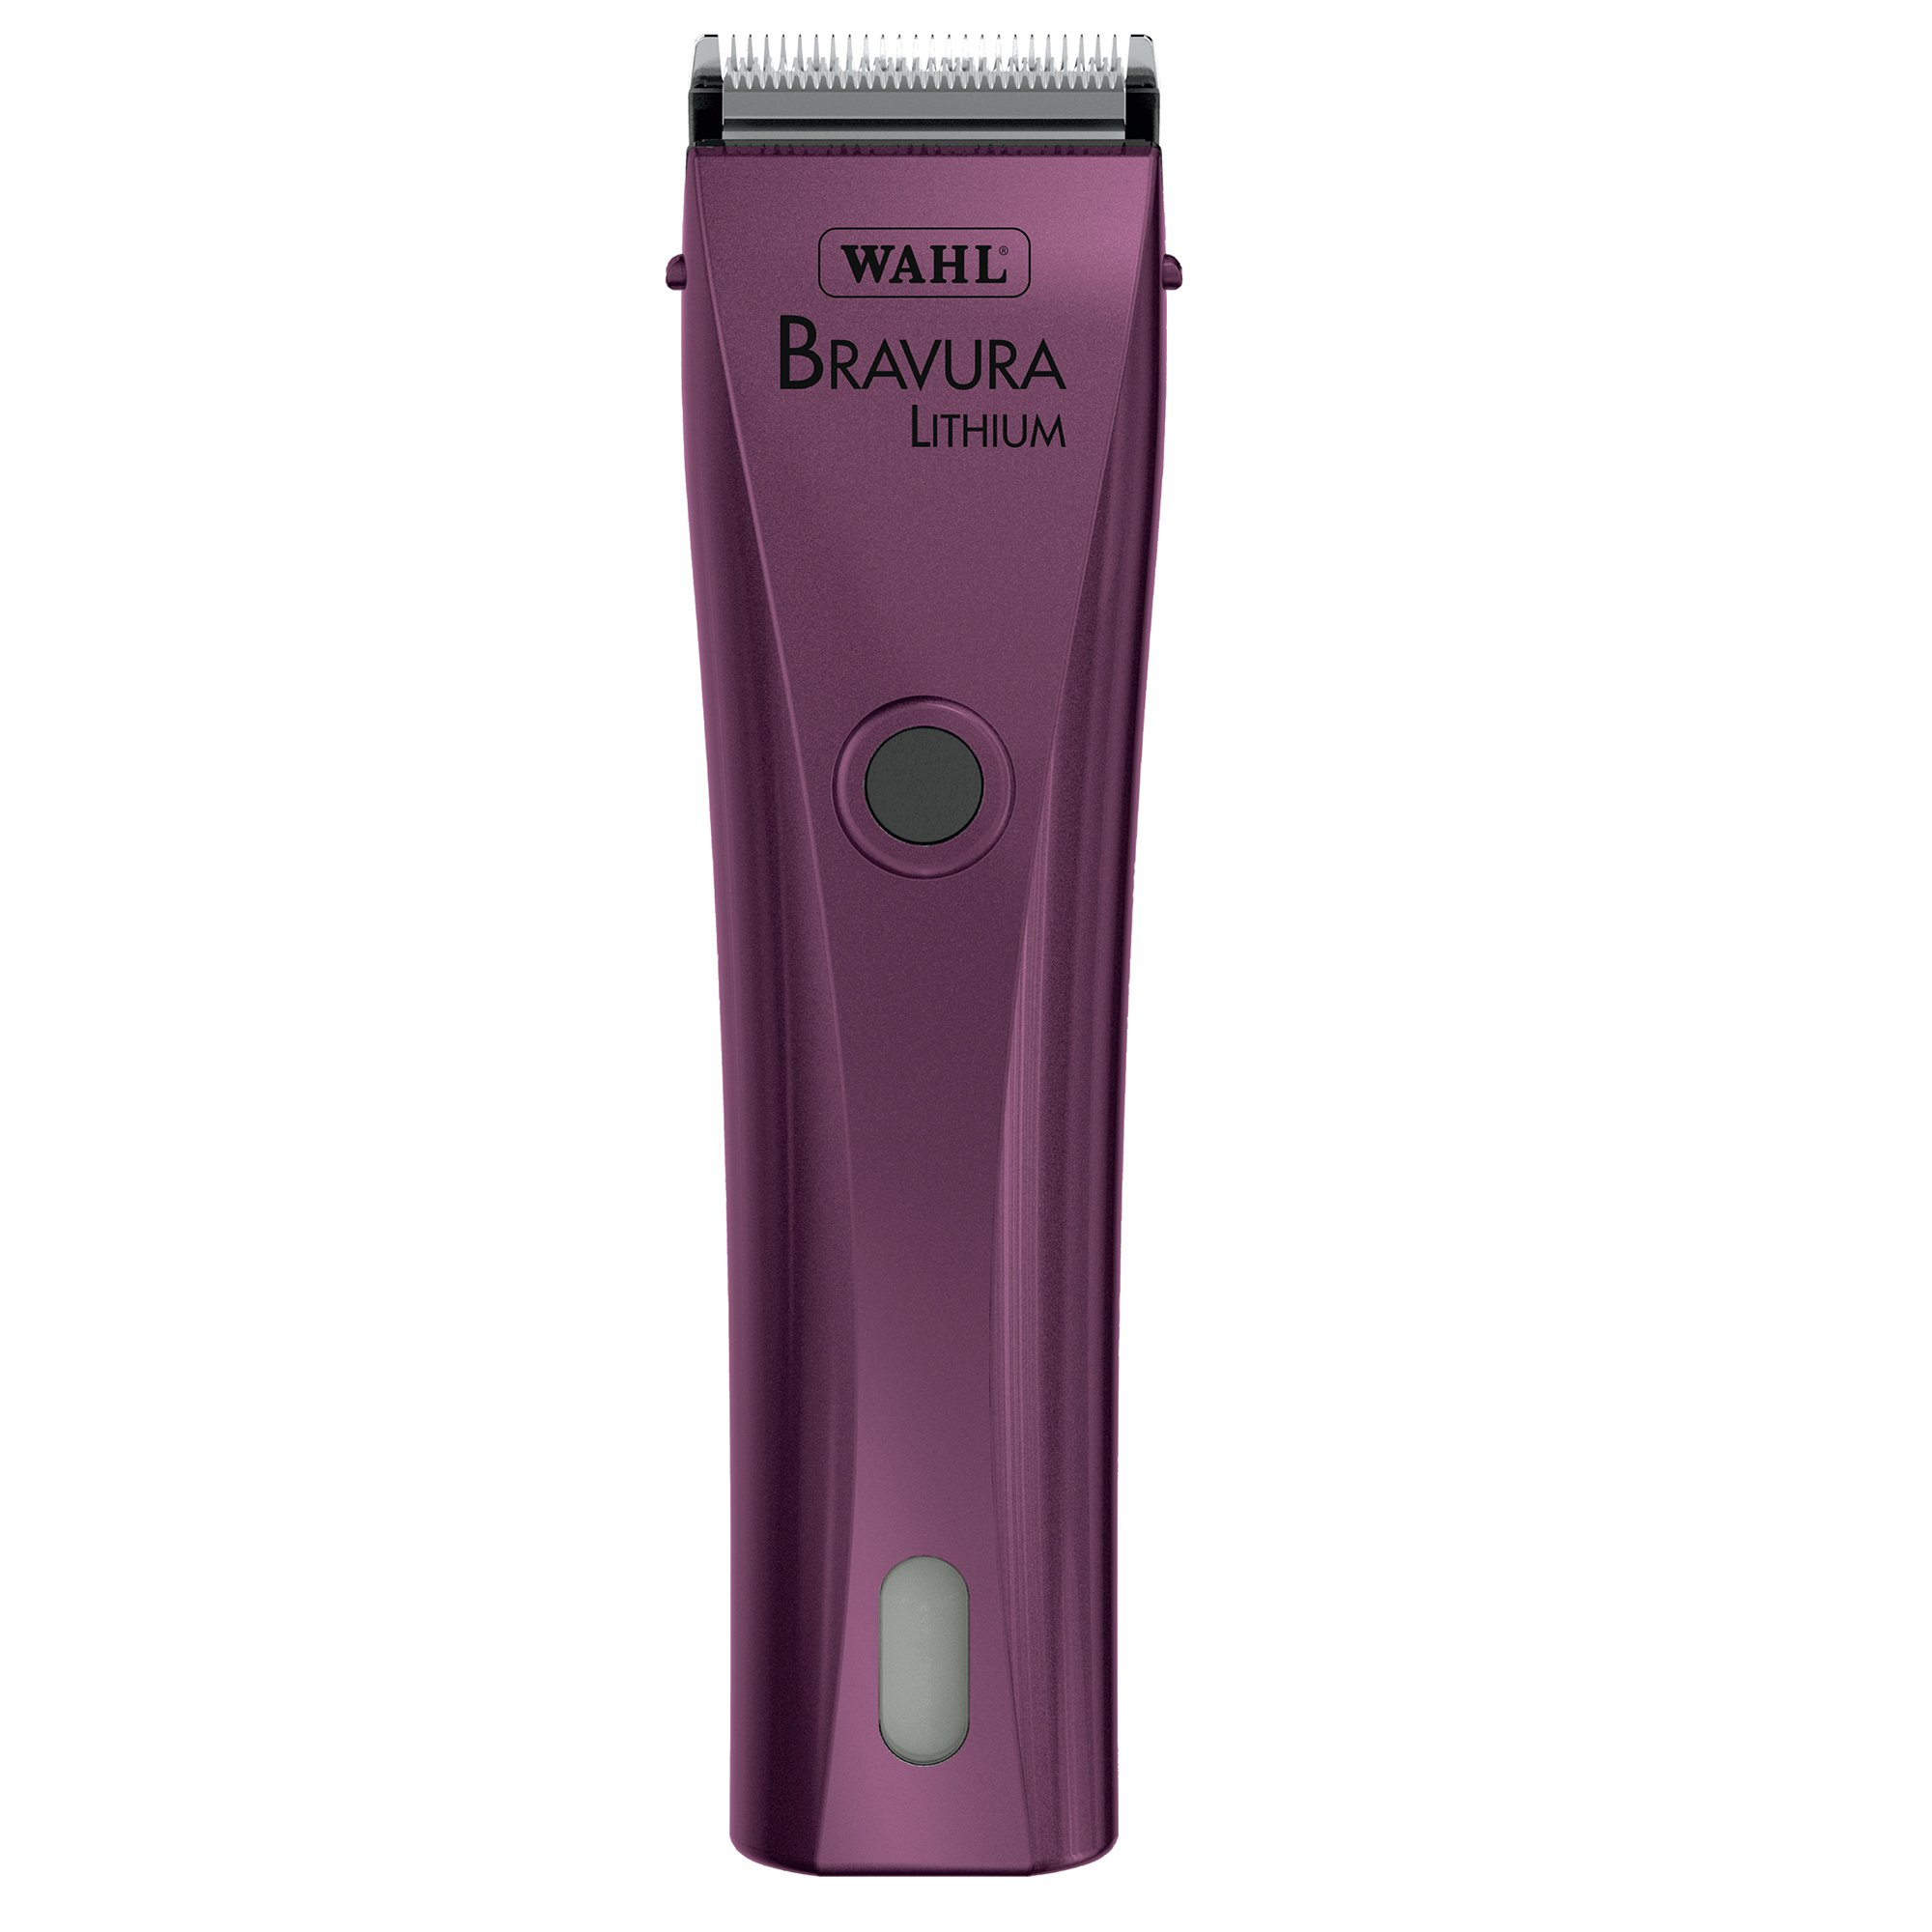 Wahl Professional Animal Bravura Pet, Dog, Cat, and Horse Corded / Cordless Clipper Kit, Purple (#41870-0423) by Wahl Professional Animal